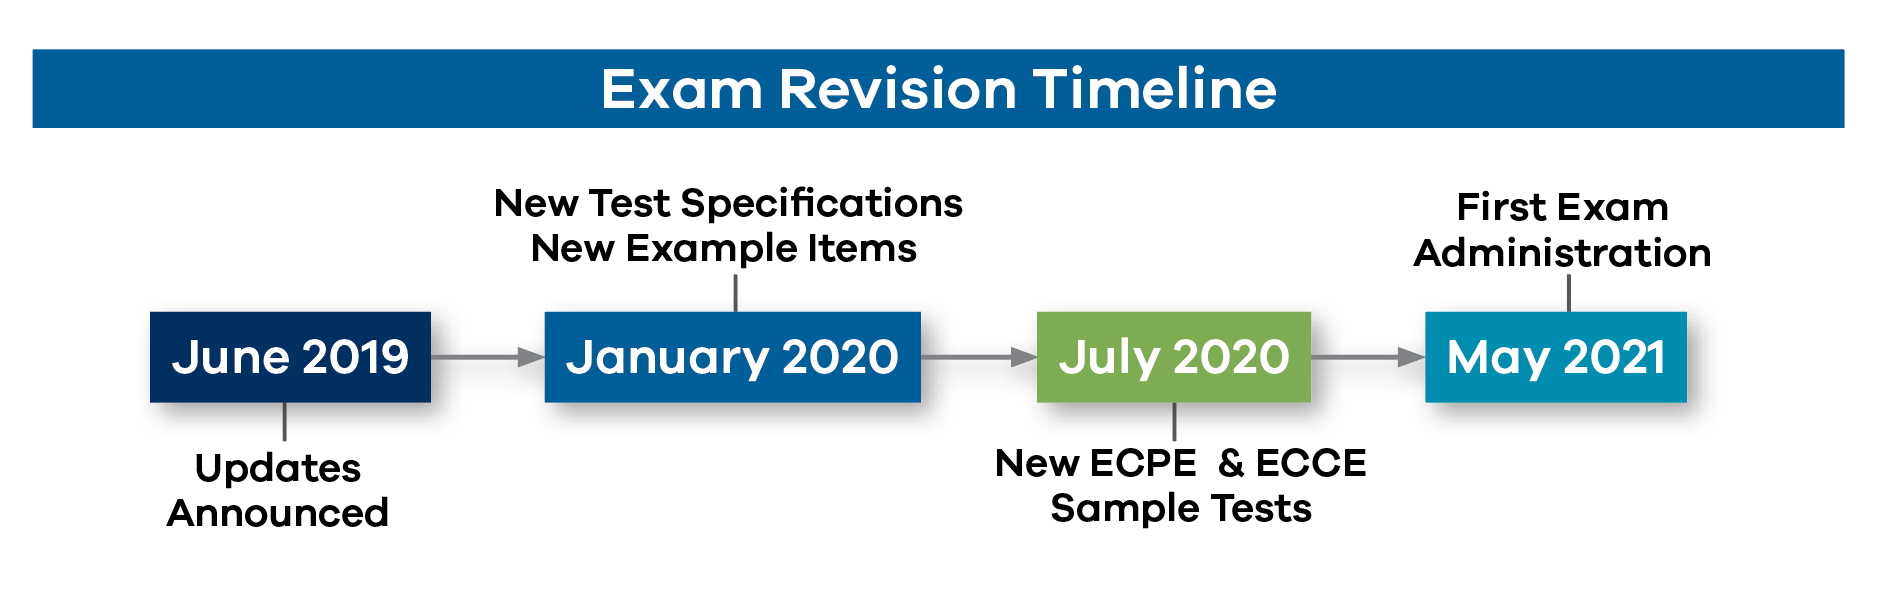 Exam Revision Timeline: June 2019: Updates Announced, January 2020: New Test Specifications New Example Items, July 2020: New ECCE & ECPE Sample Tests, May 2021: First Exam Administration